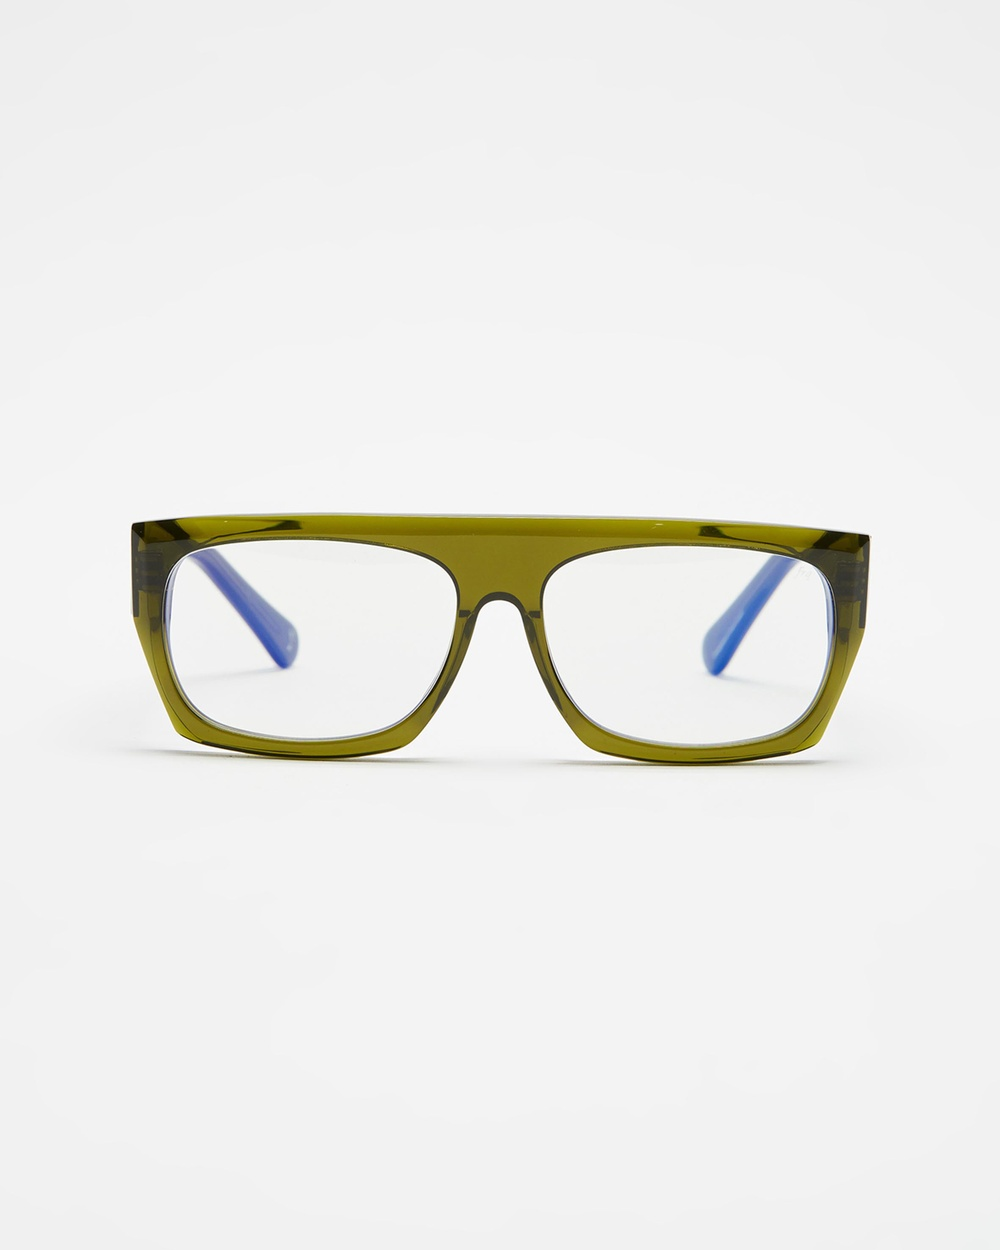 Caddis ICONIC EXCLUSIVE 12 Bar Reading Glasses Optical Heritage Green